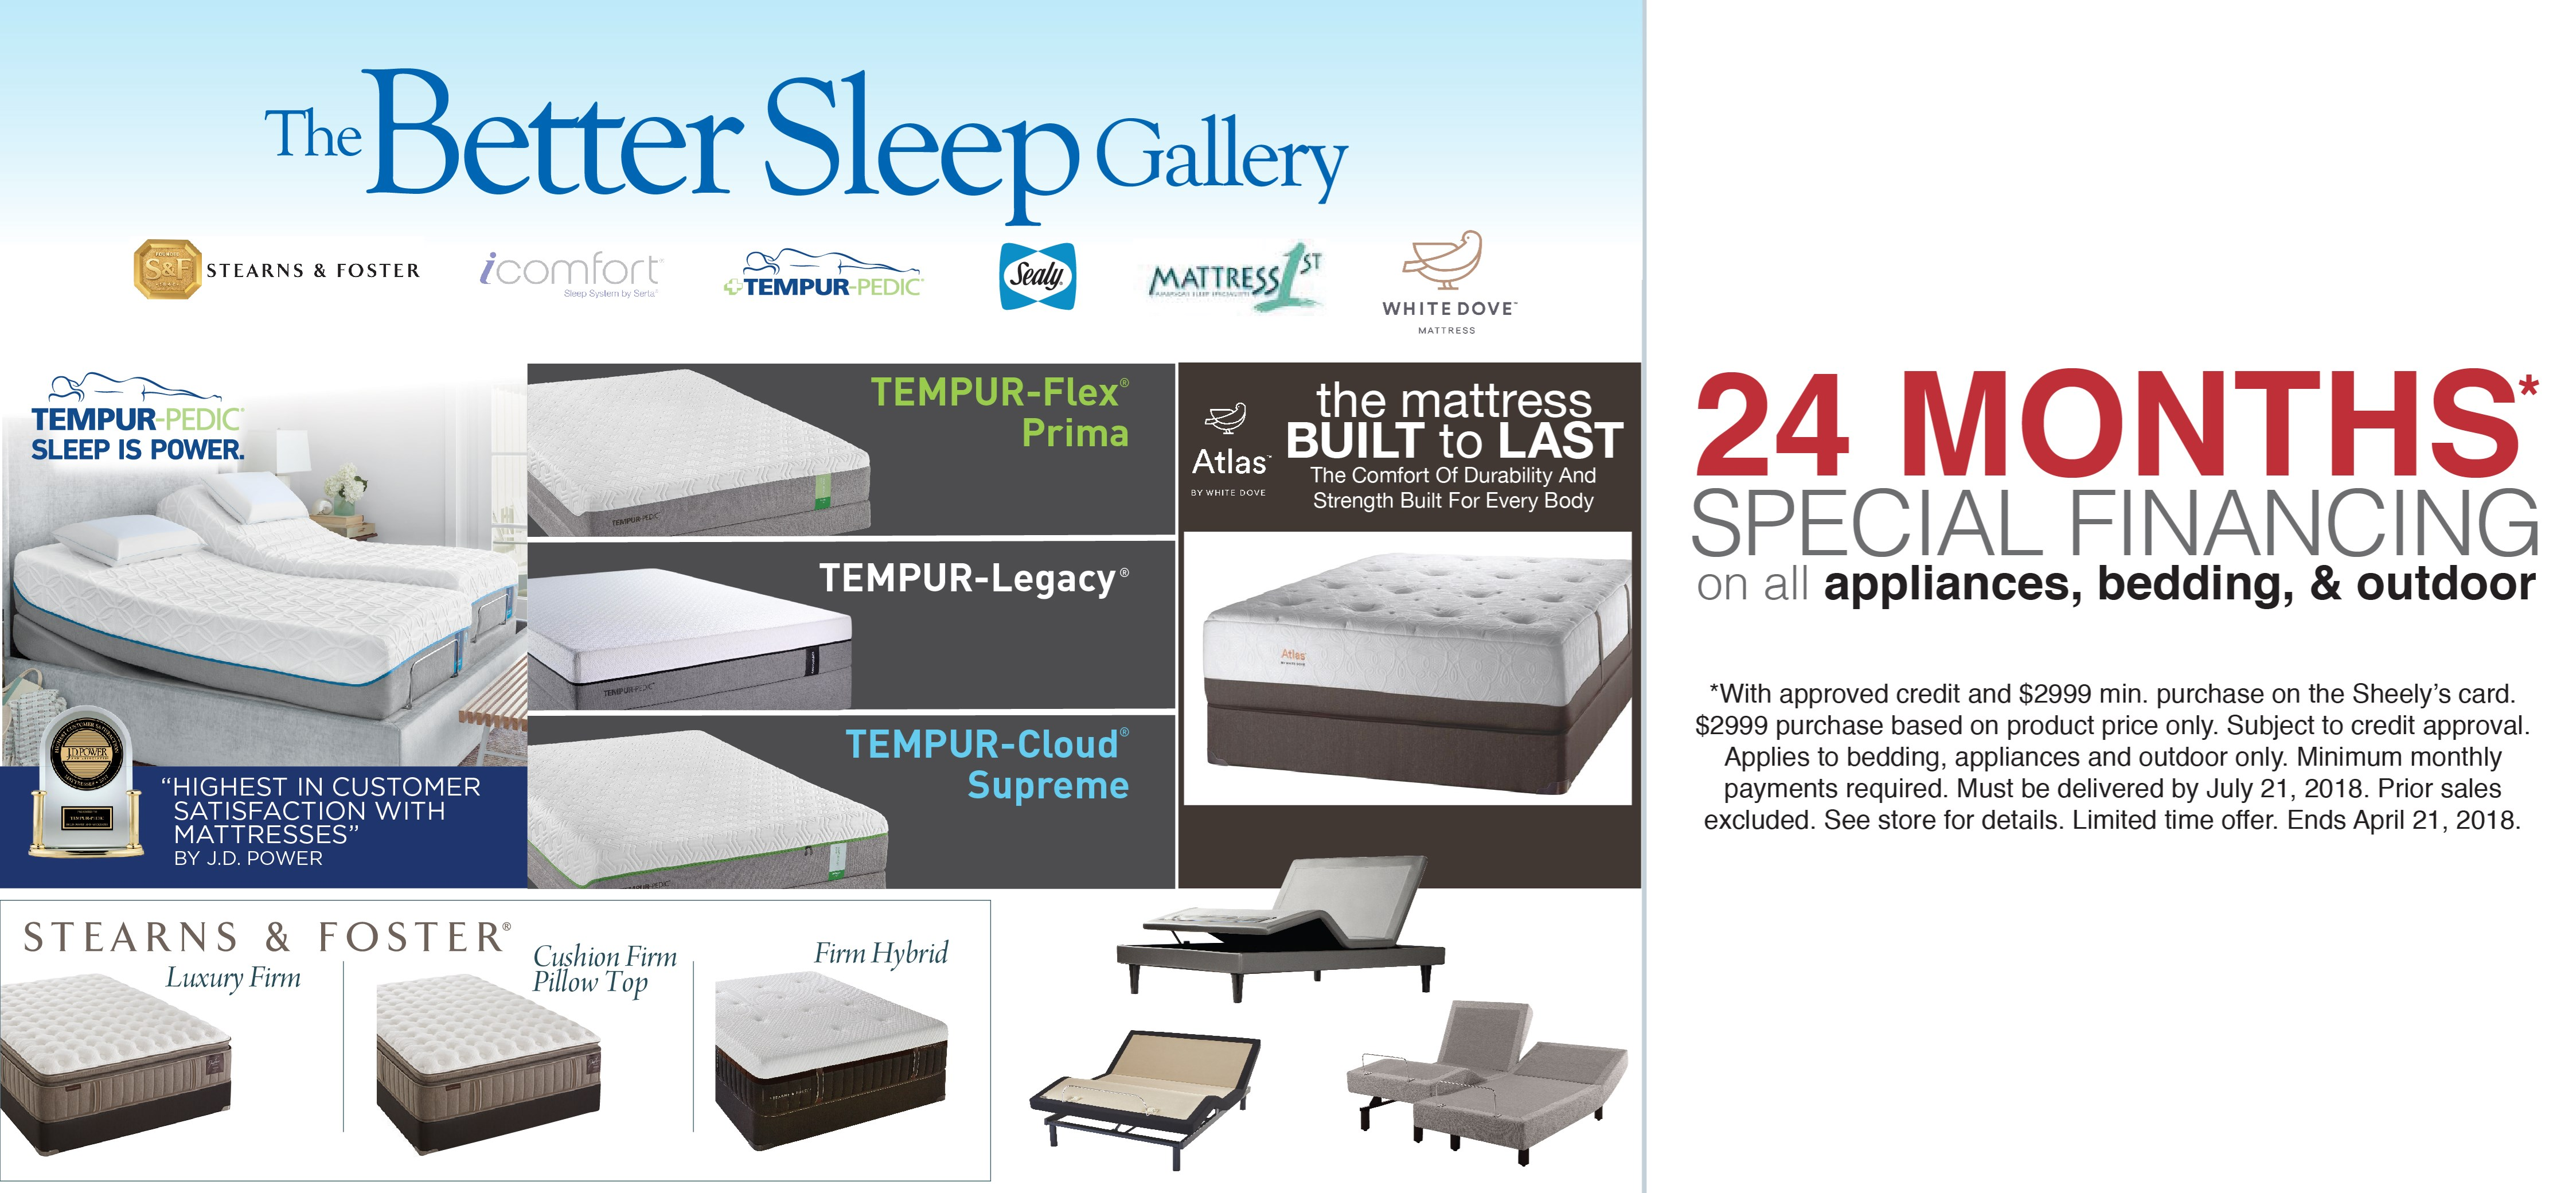 MARCH - BEDDING & APPLIANCE - 2